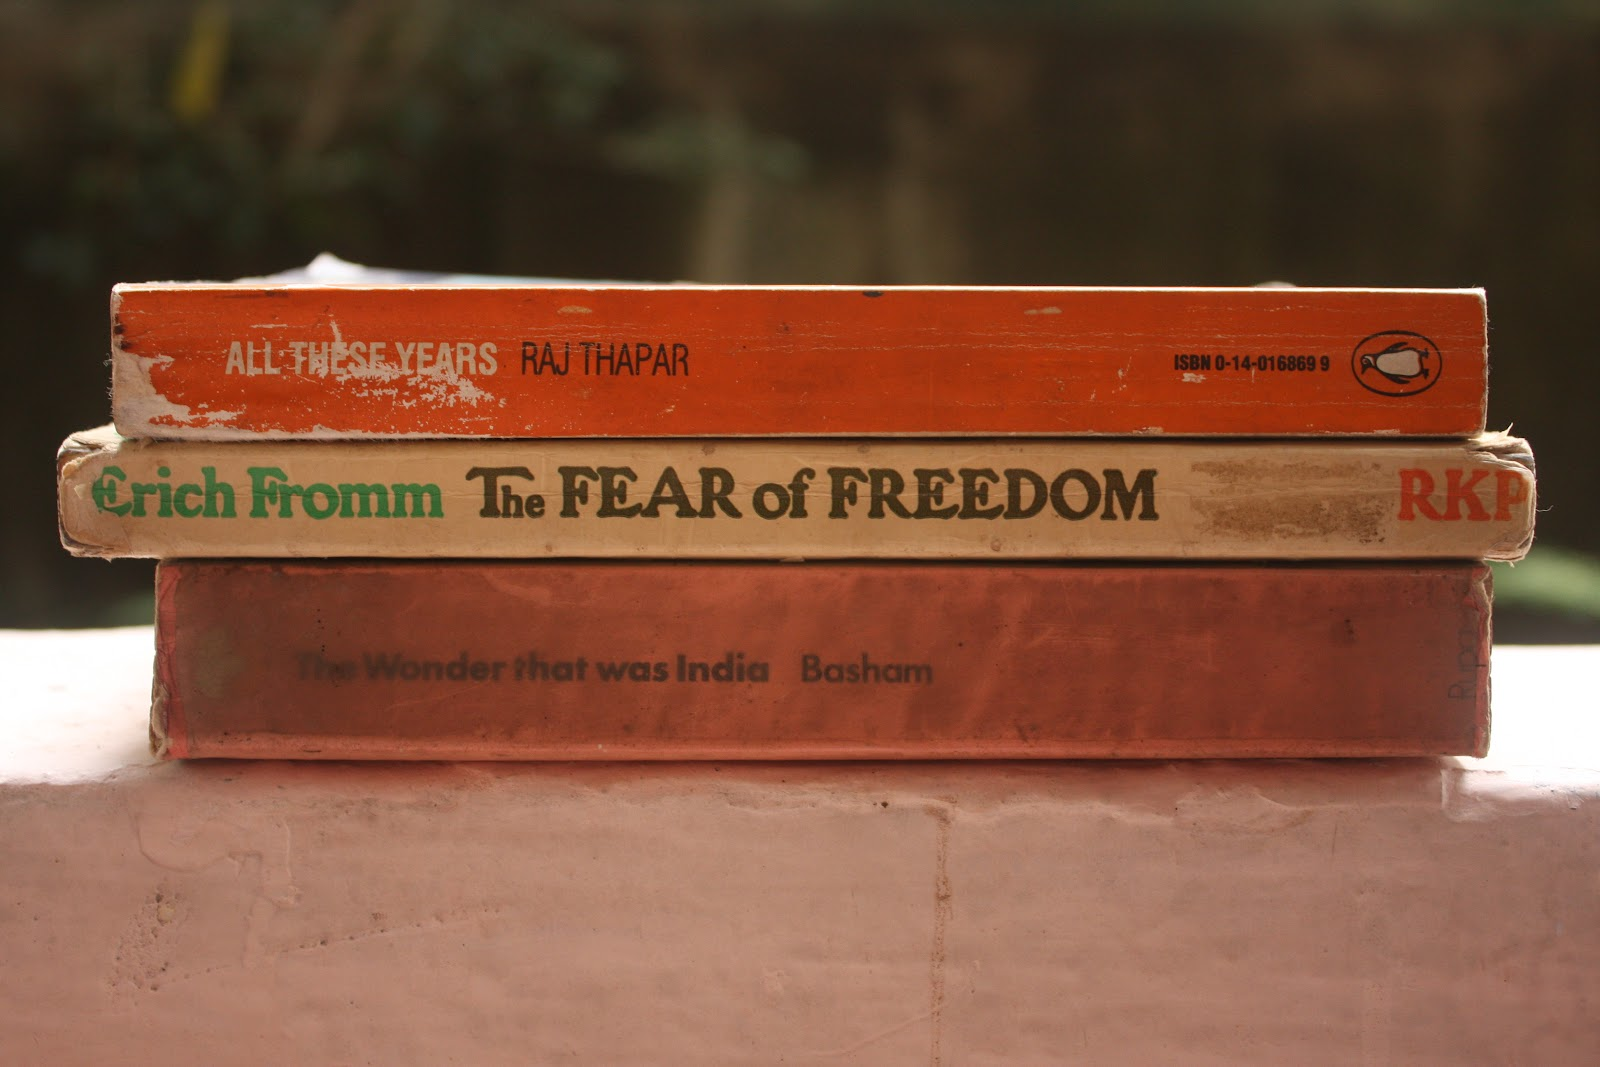 erich fromm fear of freedom pdf